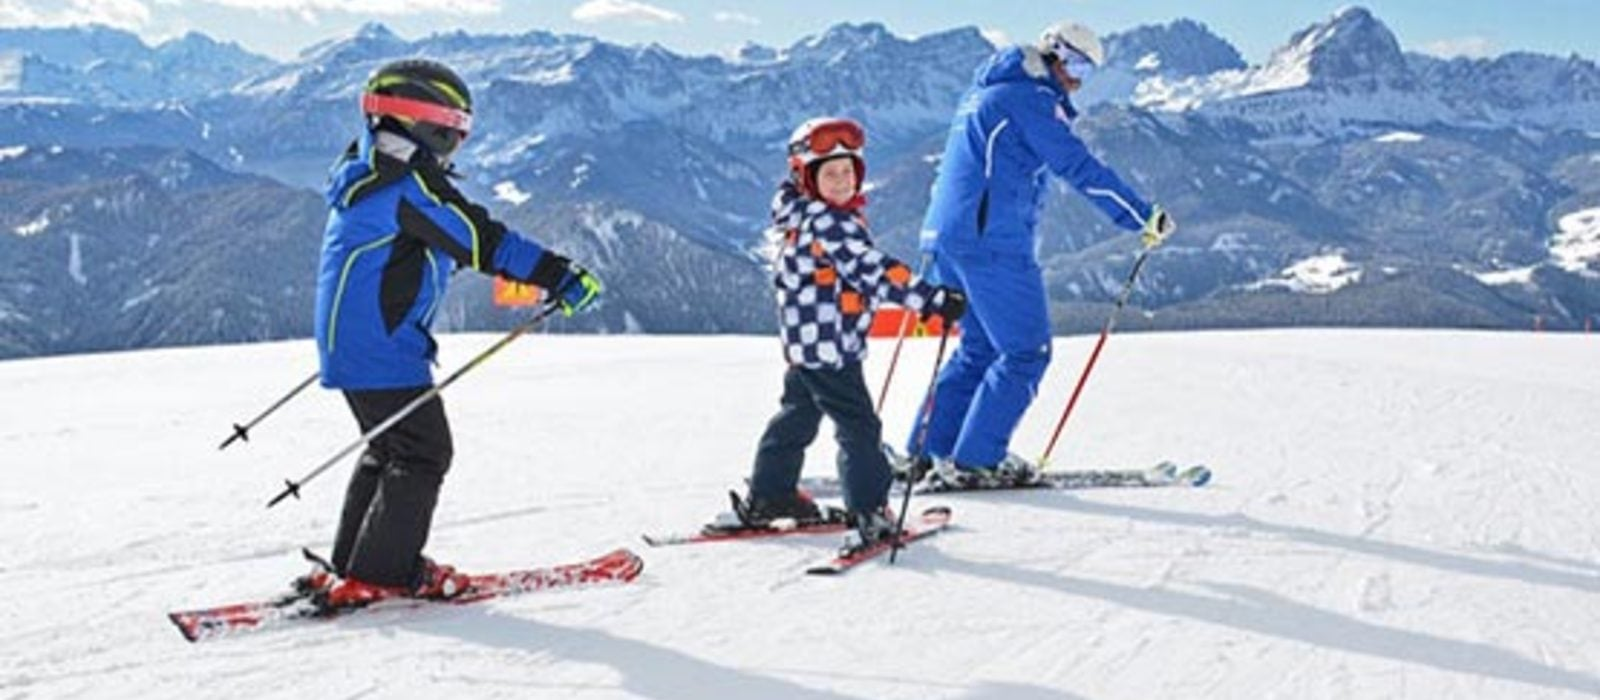 Children and Skiing: essential tips to get started